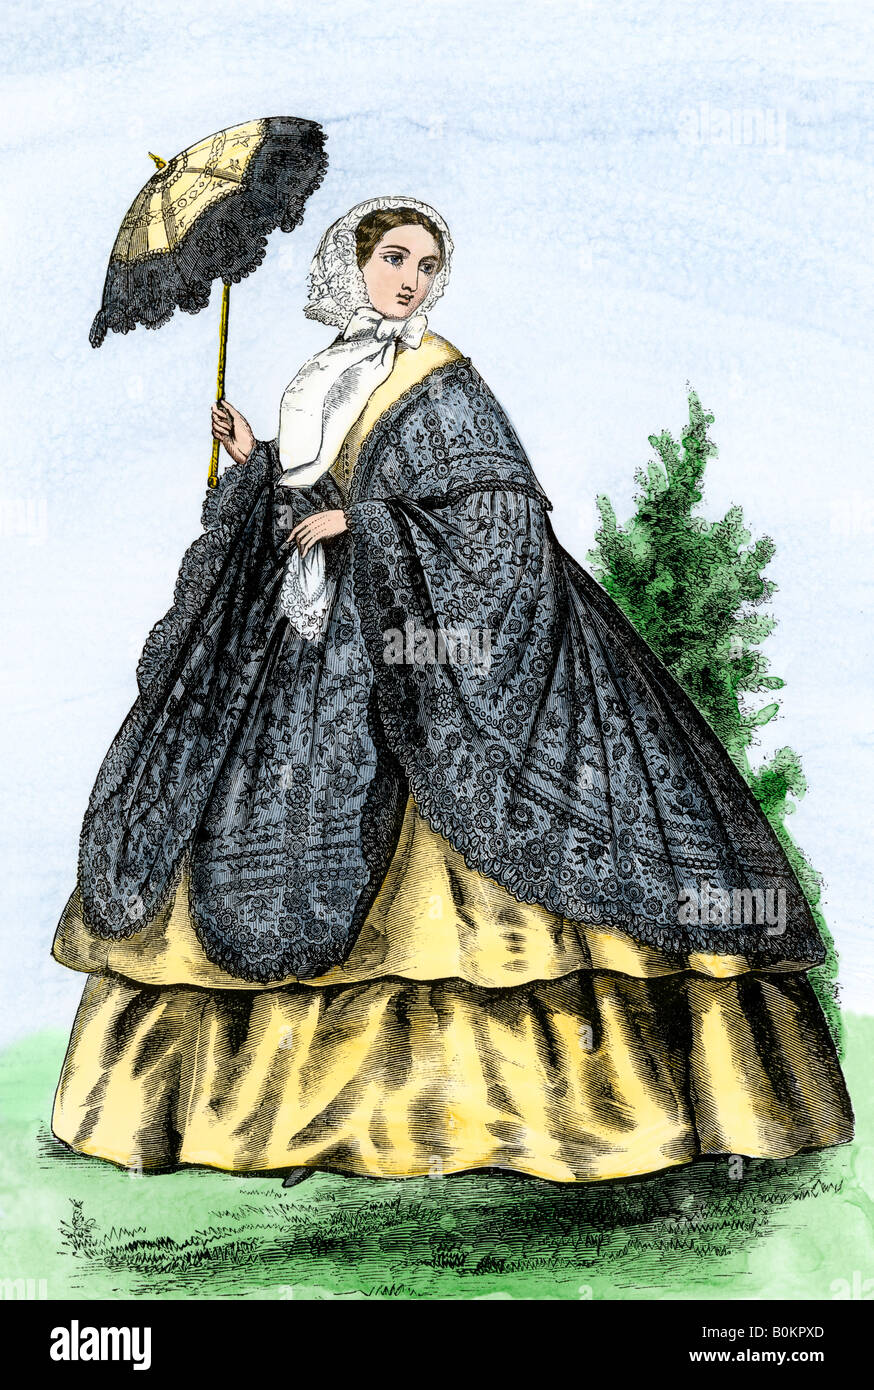 Woman in a promenade dress and shawl US 1860s. Hand-colored woodcut - Stock Image